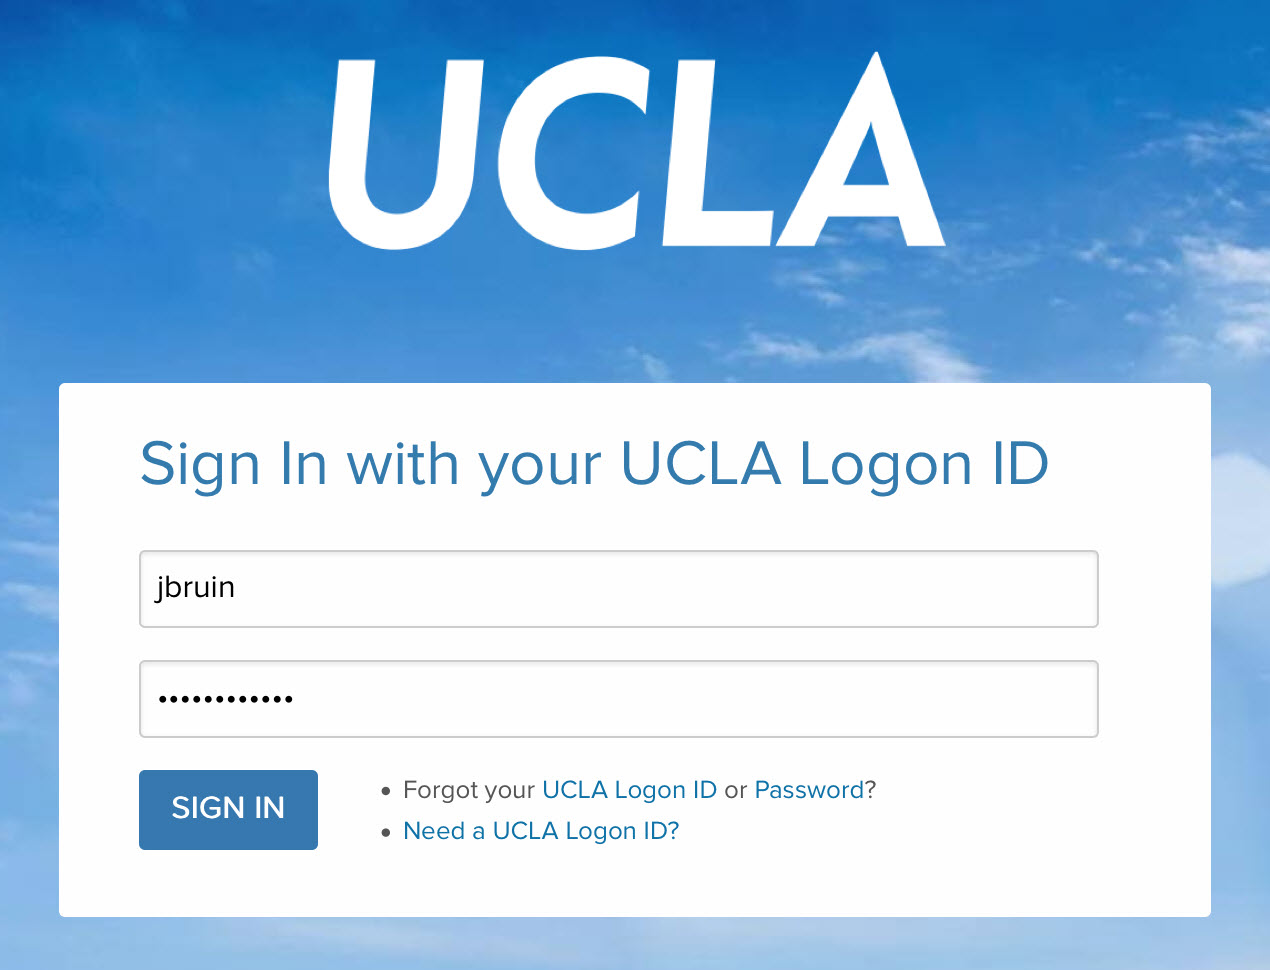 Log in with UCLA Logon ID and password